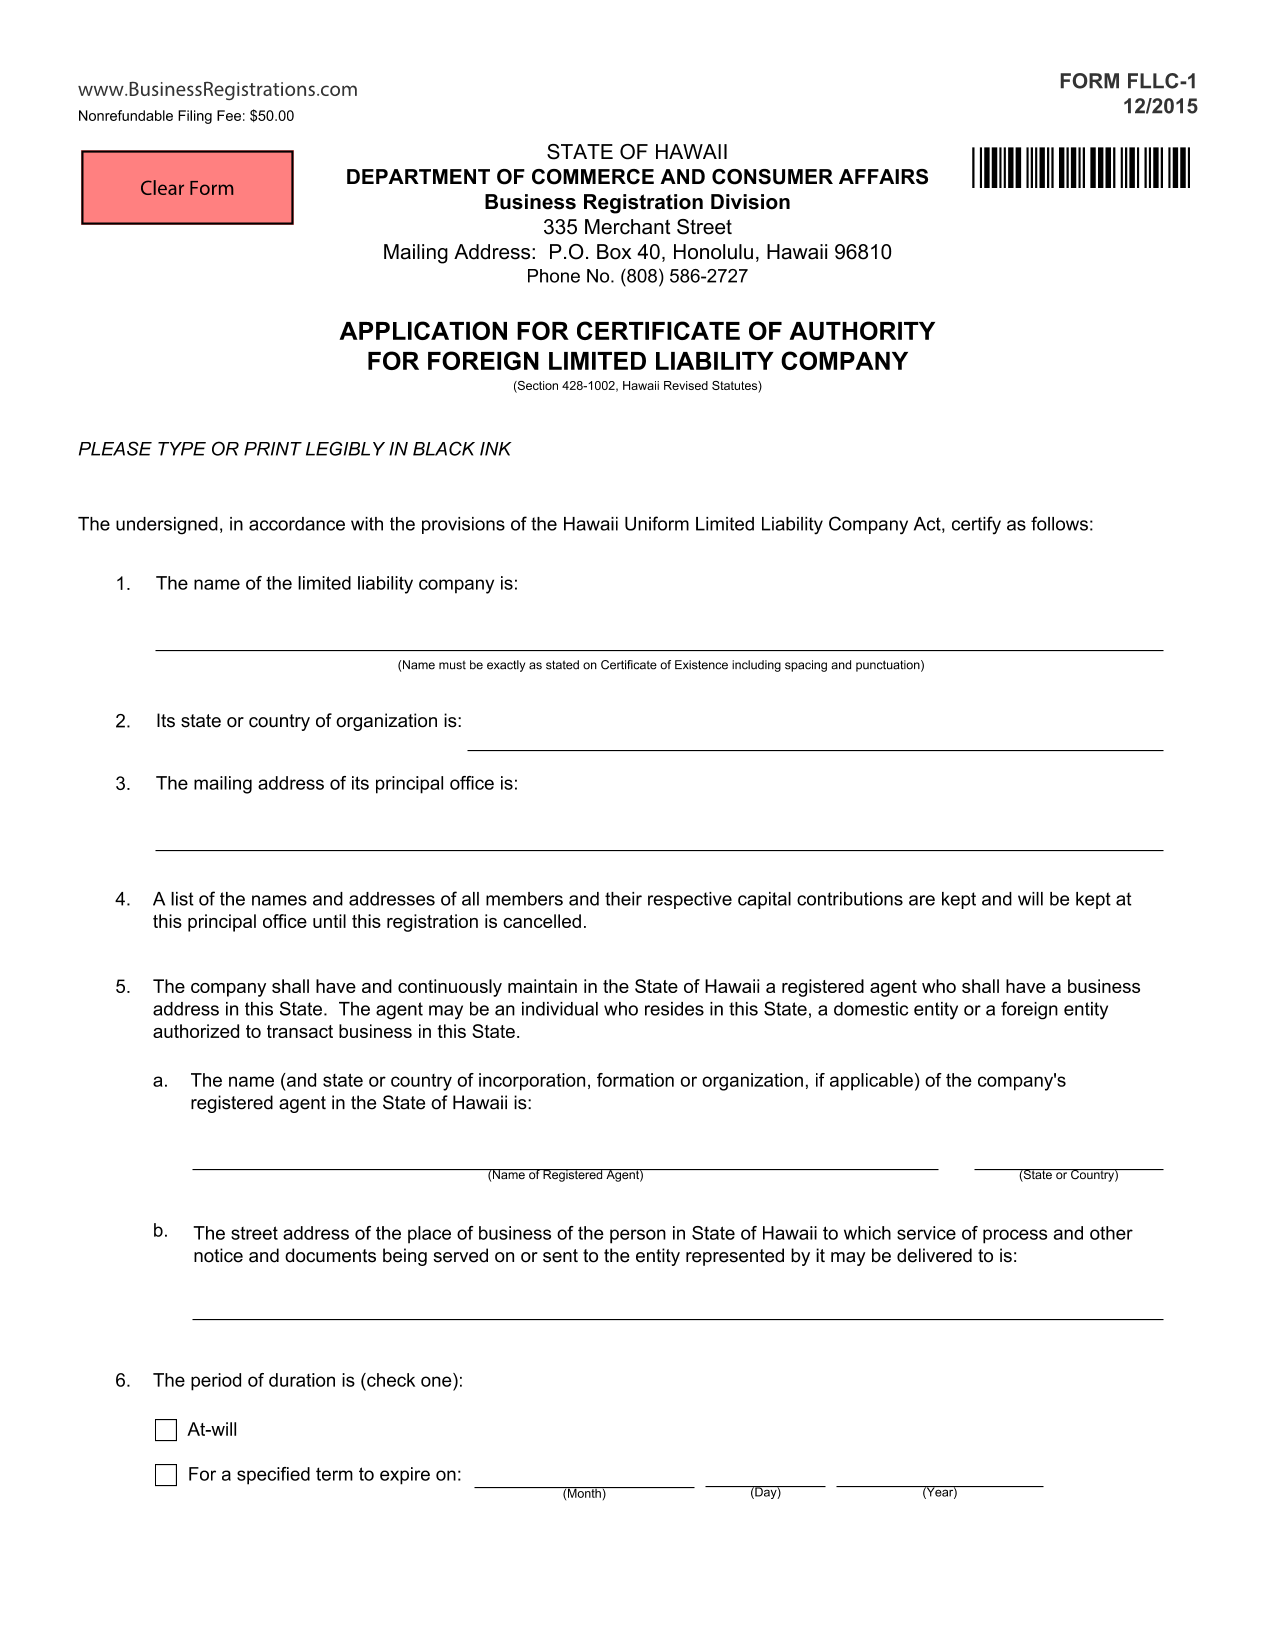 application-for-certificate-of-authority